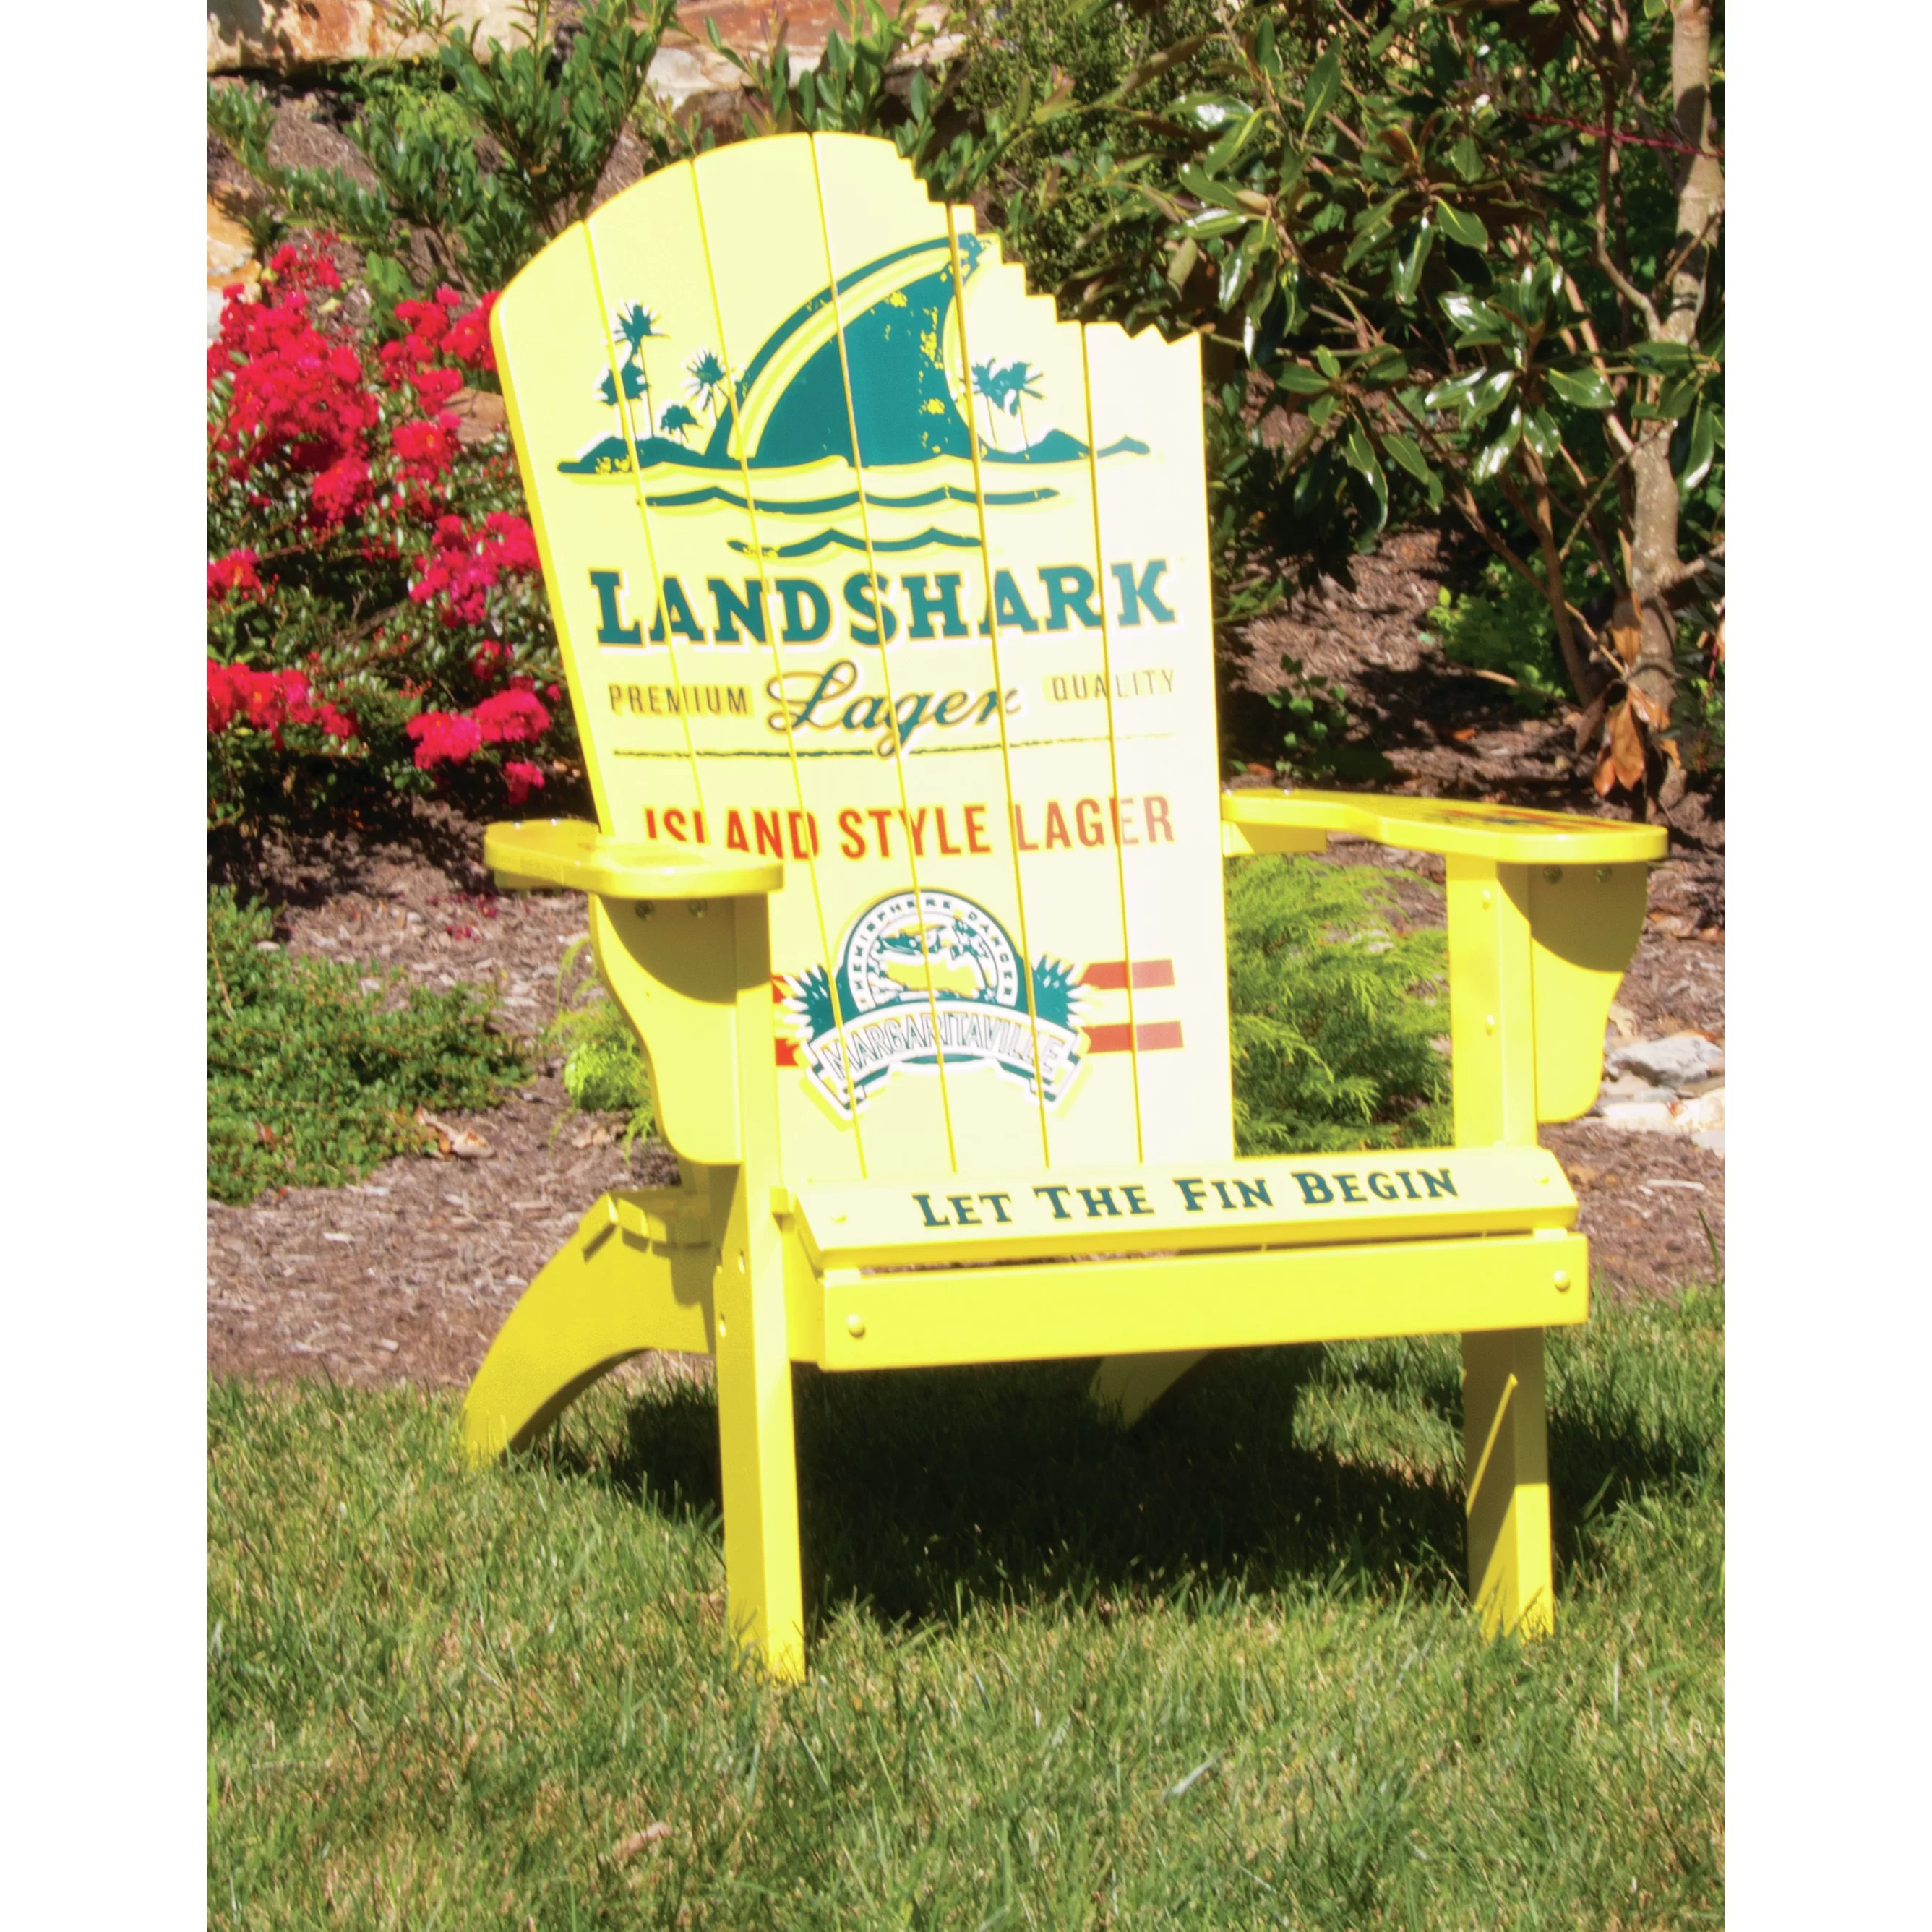 margaritaville chairs for sale swing chair b&q quotlandshark quot adirondack and reviews